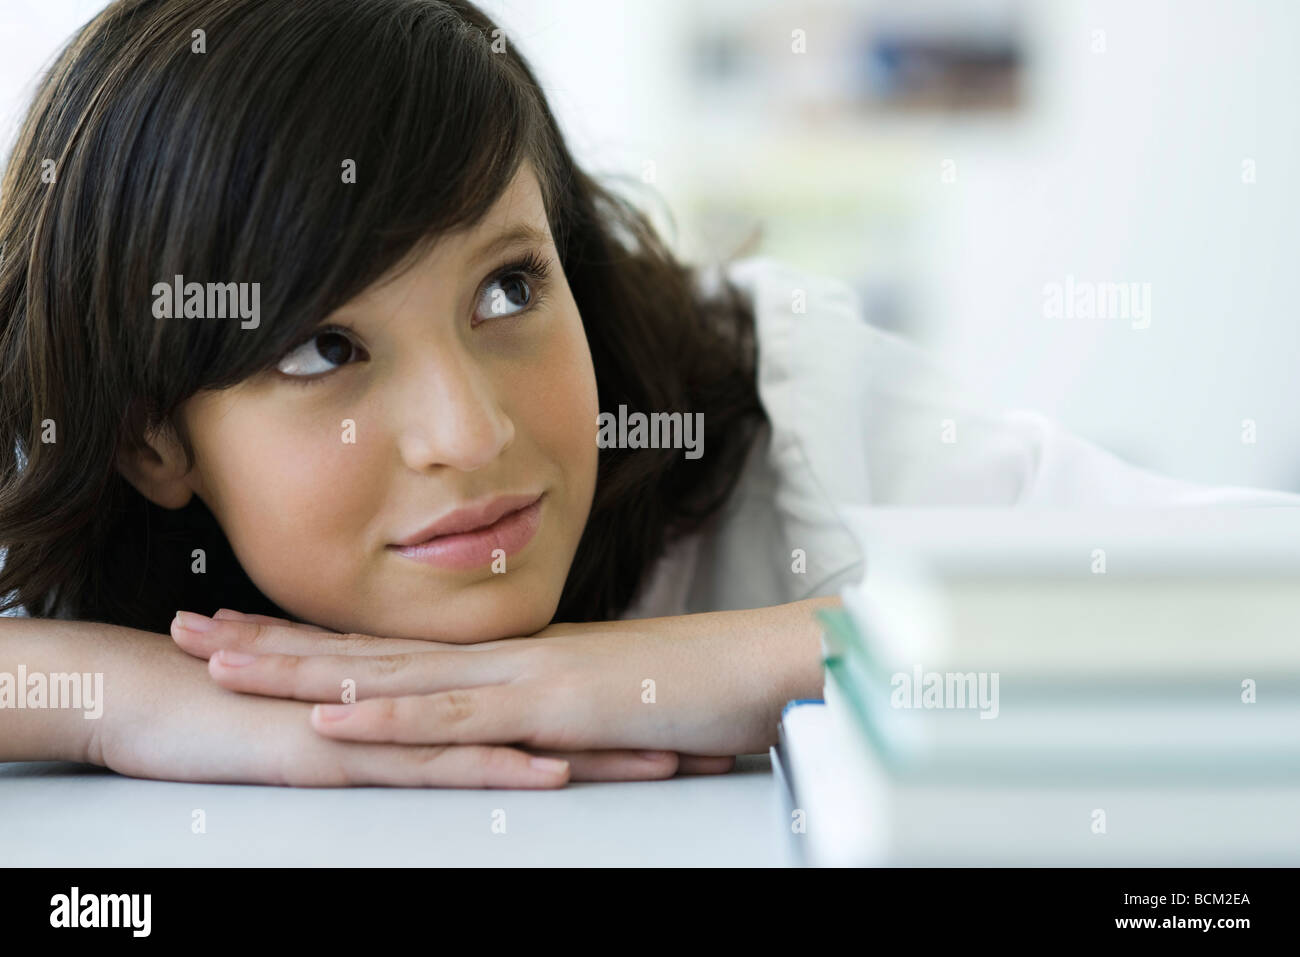 Young female resting head on hands, looking up dreamily, stack of books in foreground - Stock Image